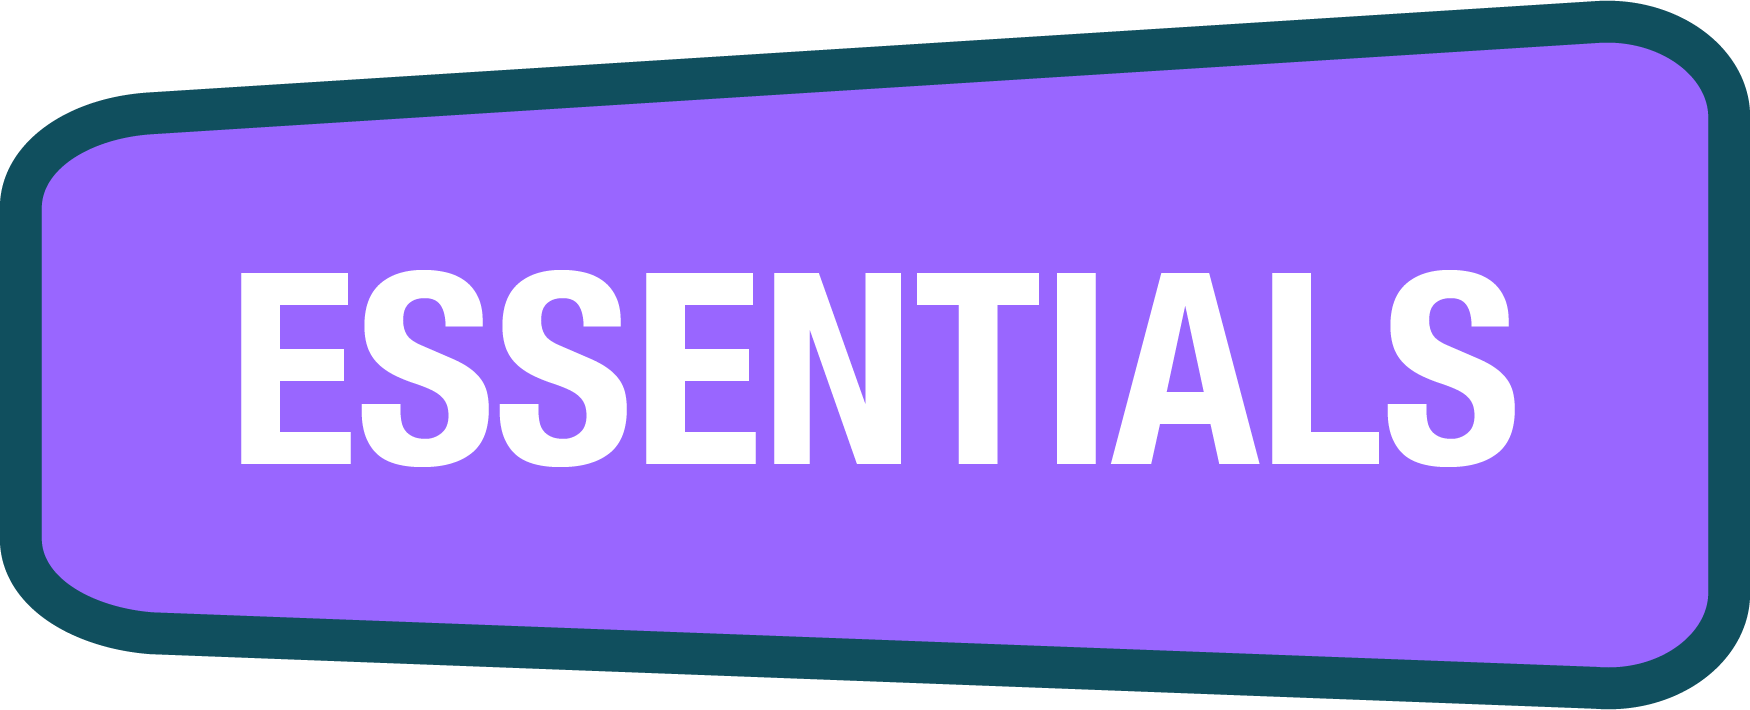 CyberPass Essentials logo